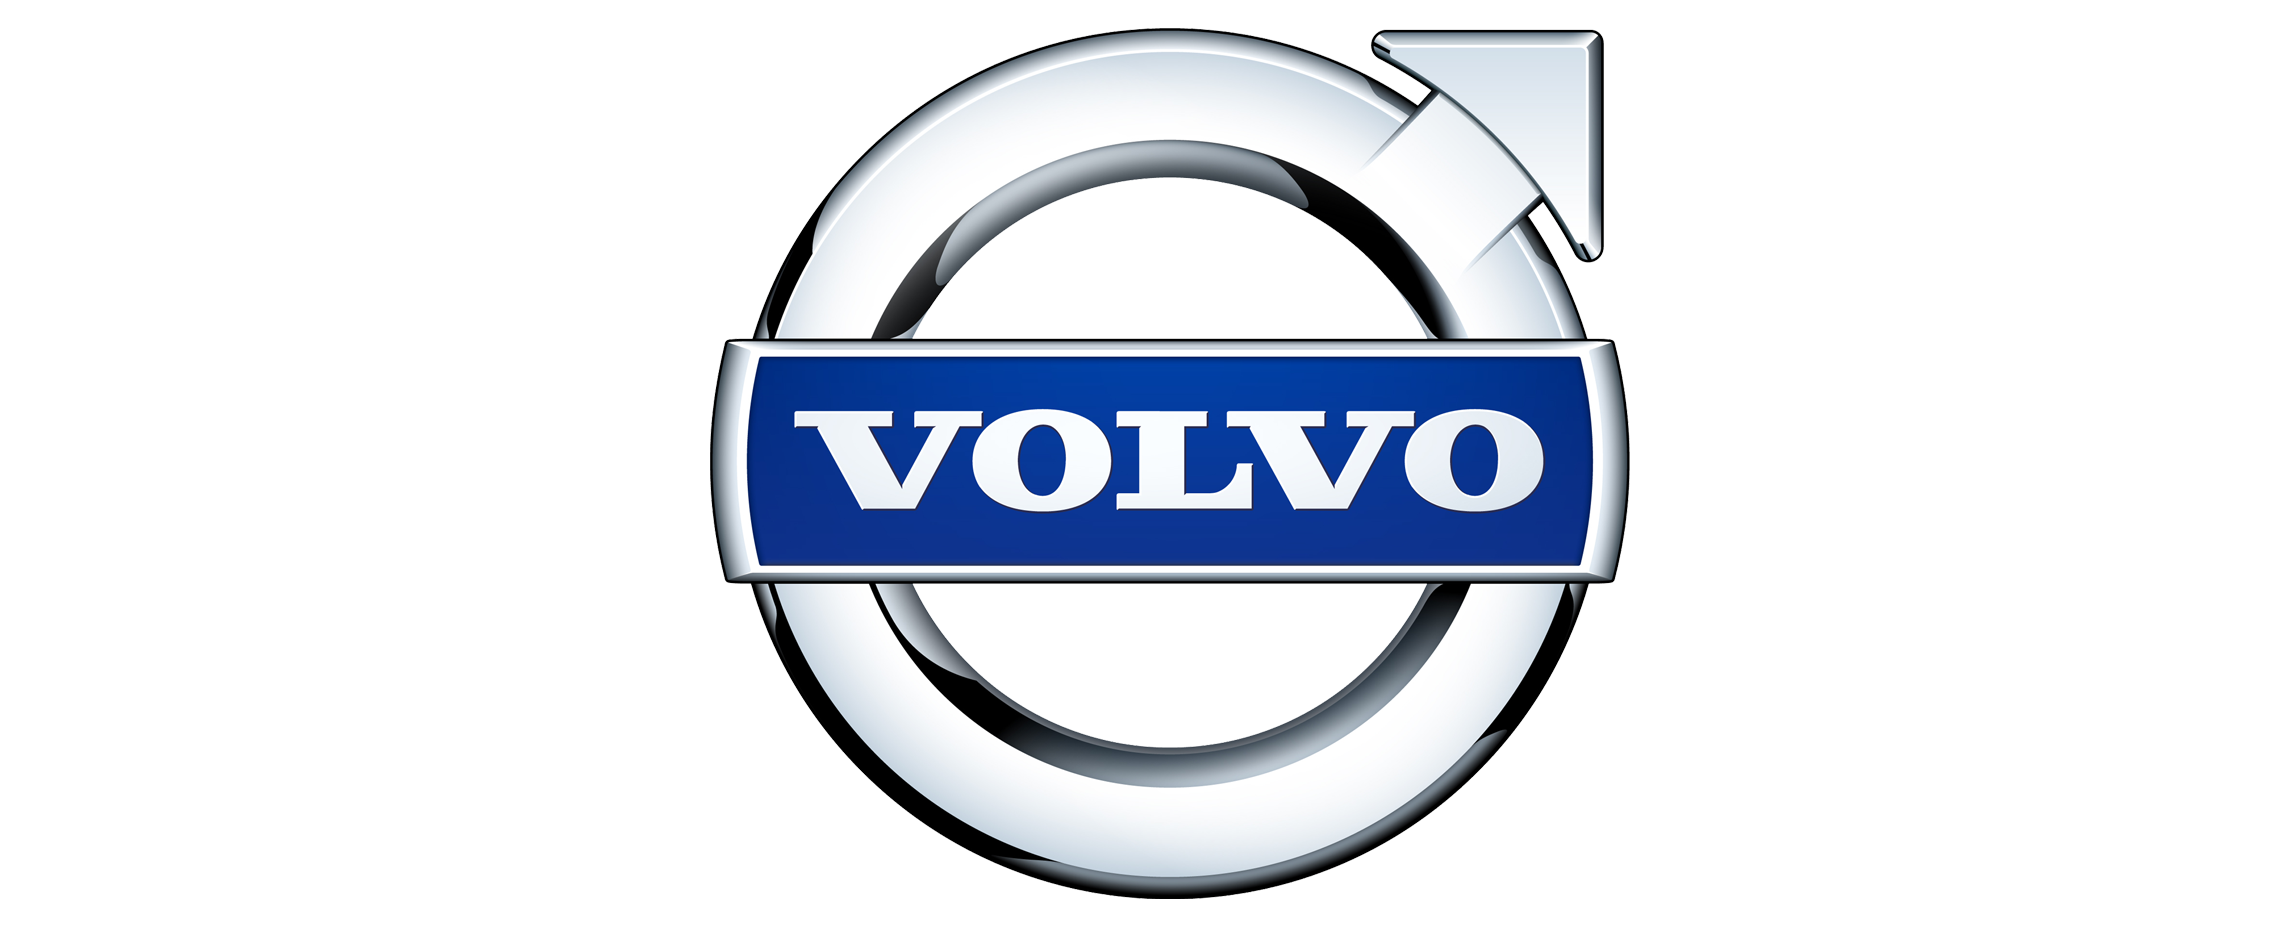 Volvo Logo Meaning and History [Volvo symbol].